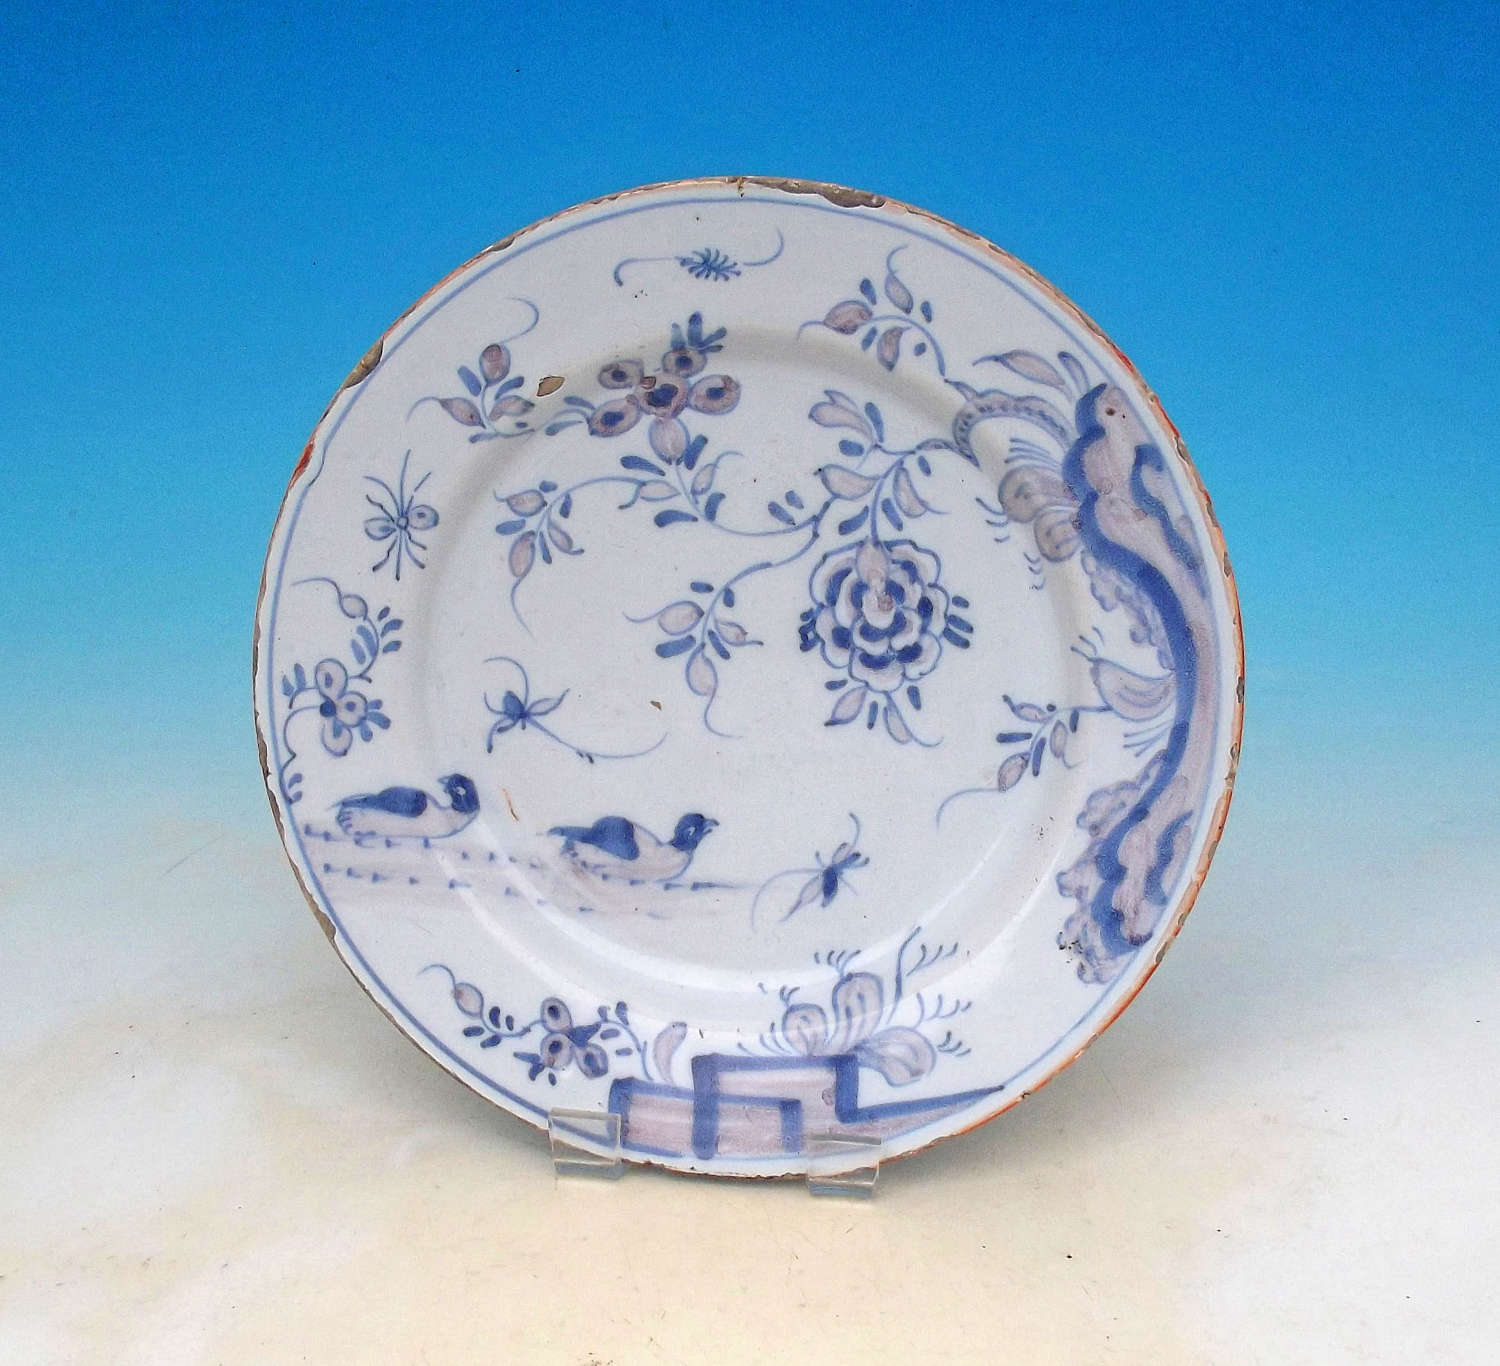 Antique Pottery 18thc Polychrome Delftware Plate. Liverpool. C1740-60.